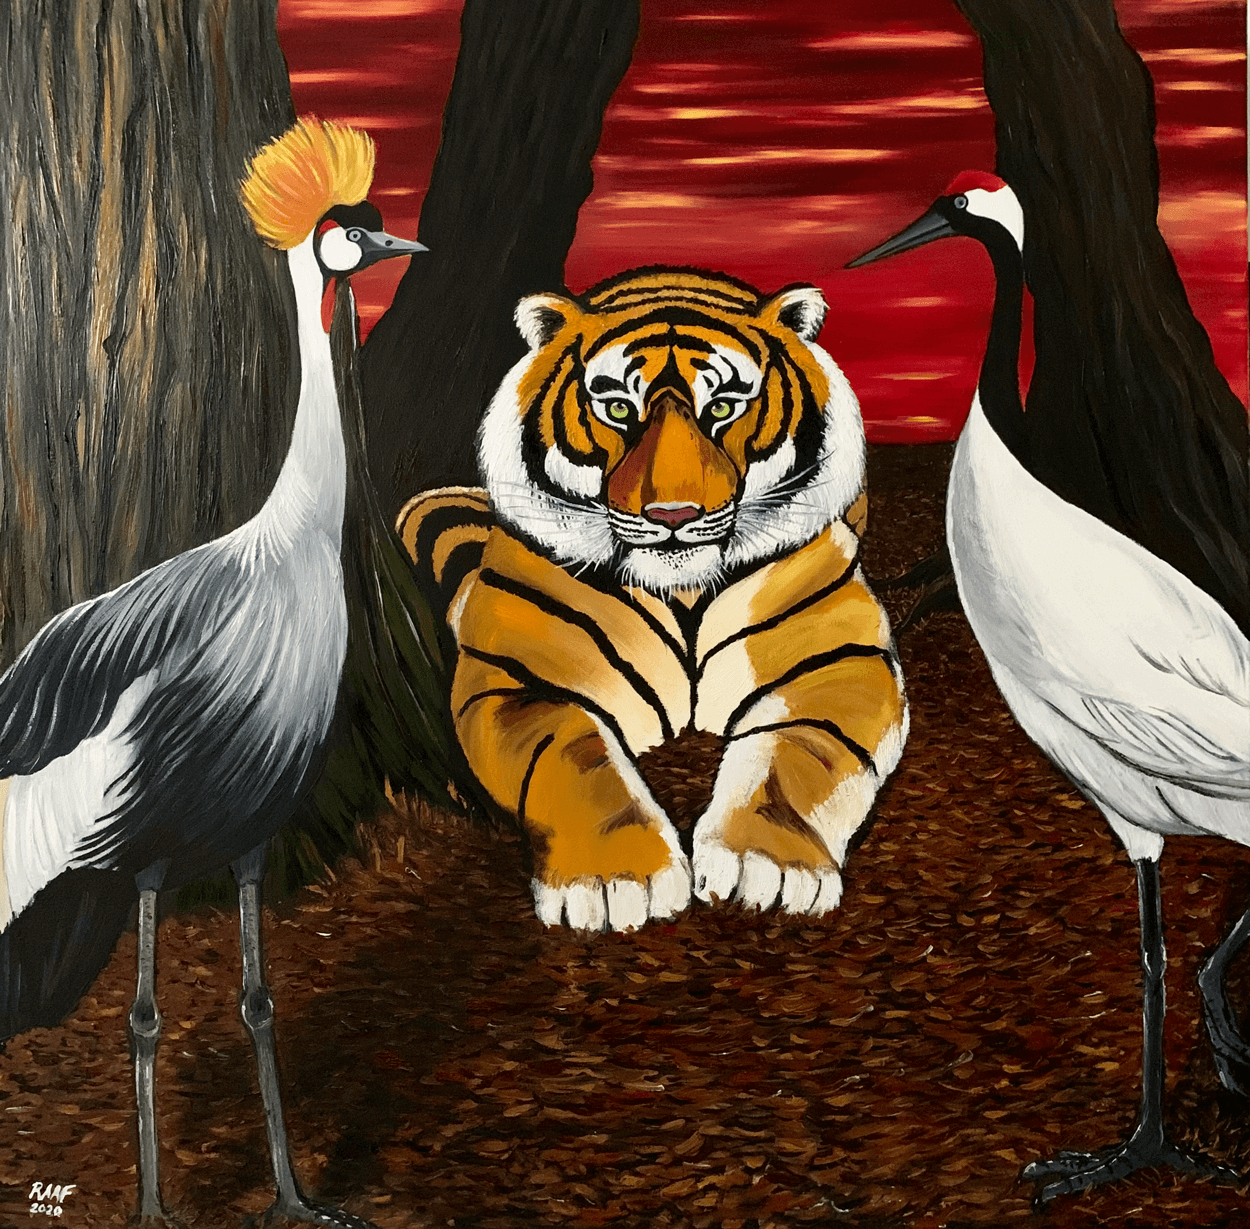 Tiger_and_cranes_painting_by_raaf-shadow